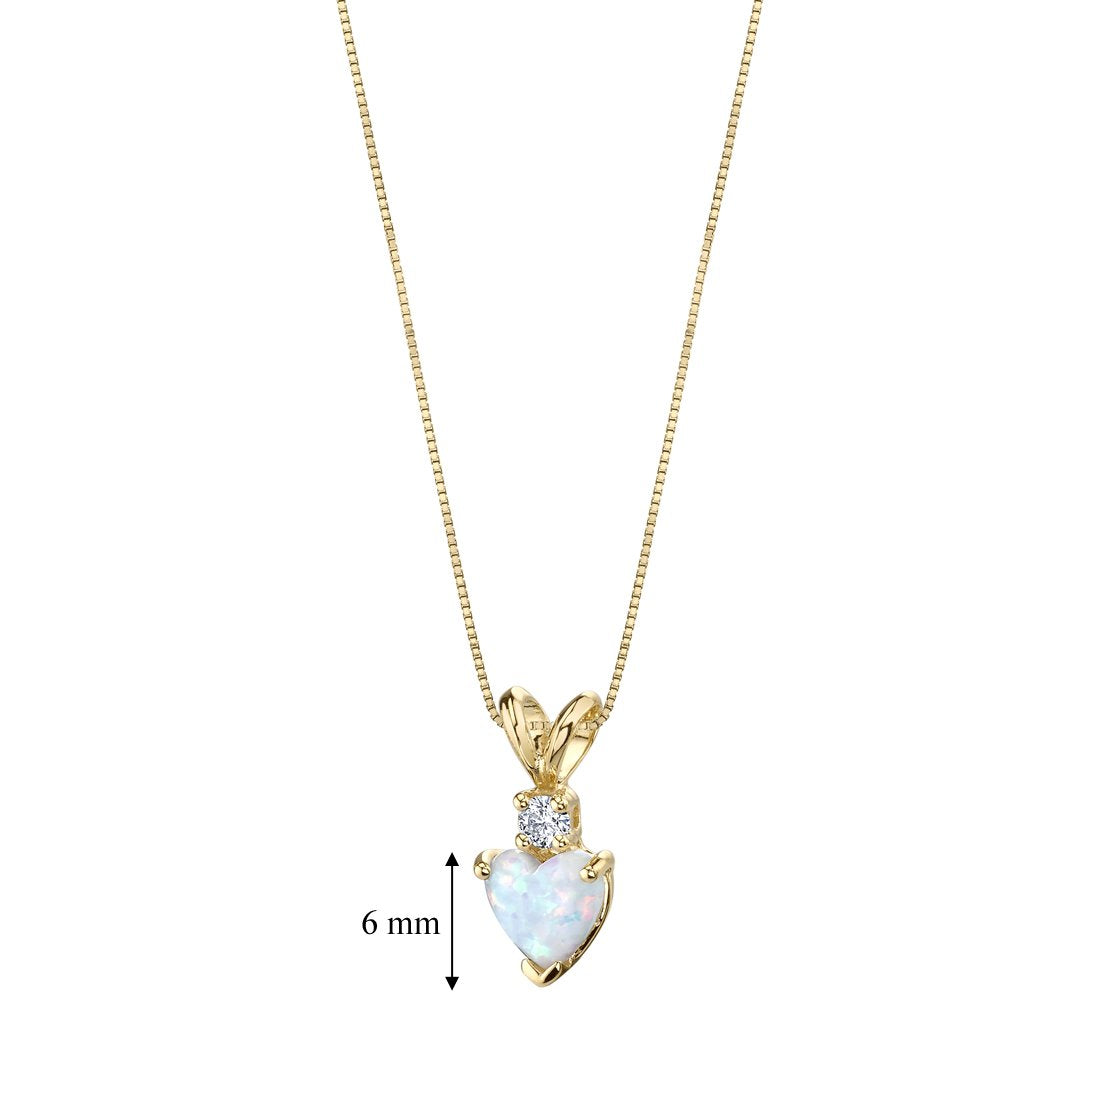 14 Karat Yellow Gold Heart Shape Created Opal Diamond Pendant - wiihuu